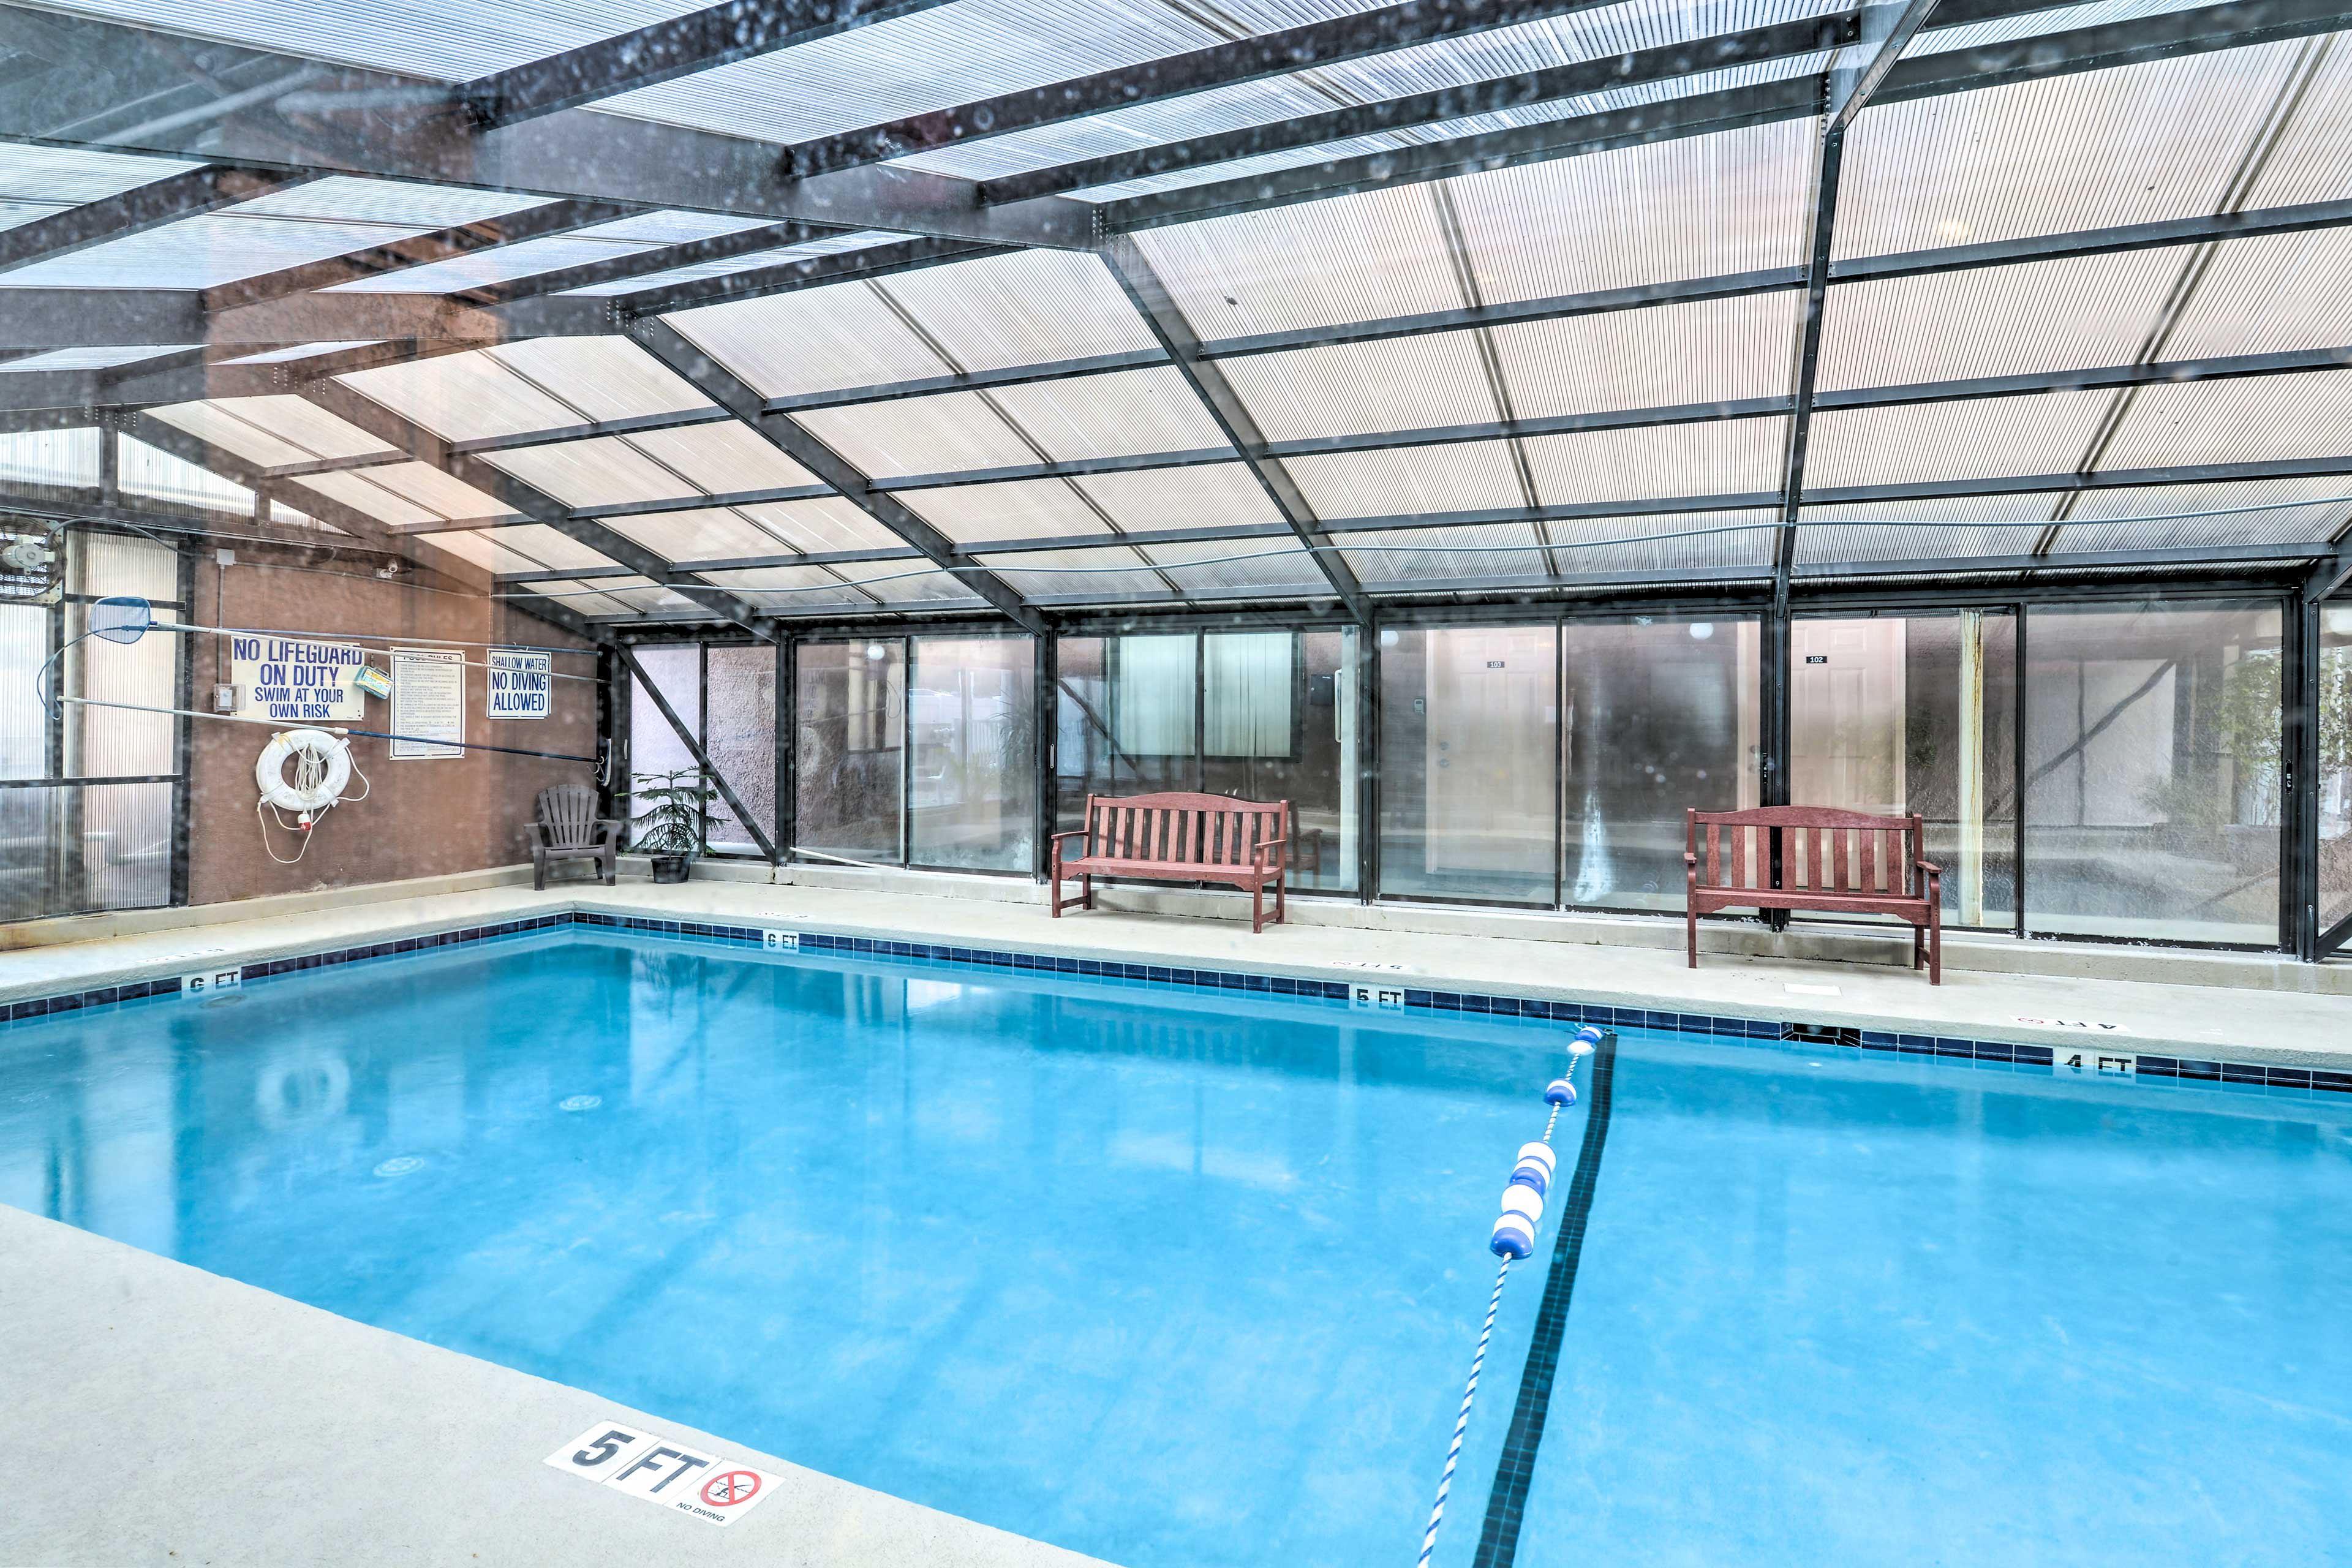 Get access to community amenities like the indoor pool.